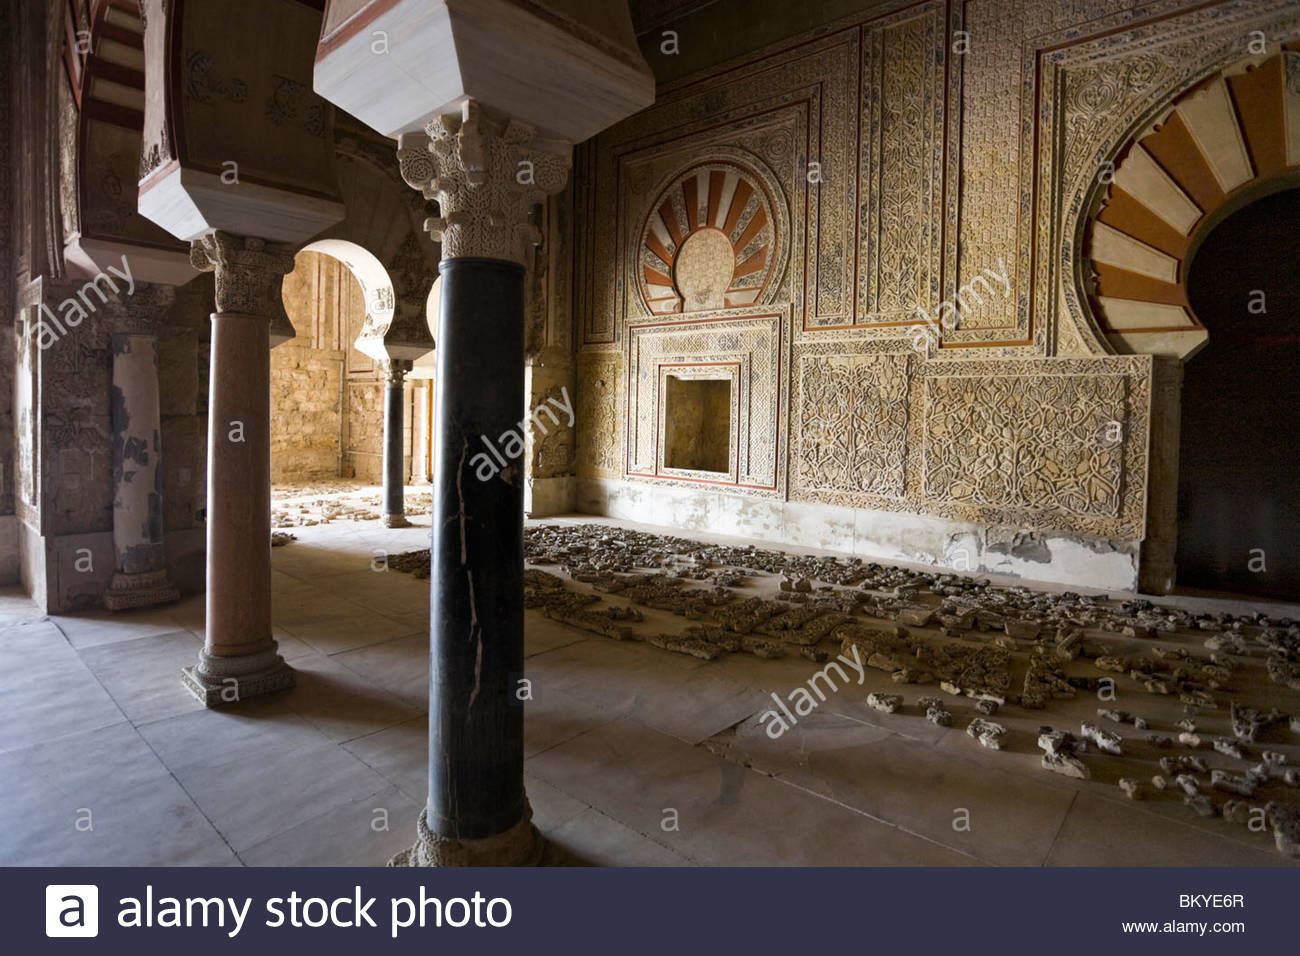 Medinat al-Zahra, residence of the andalusian Calif, Province Cordoba, Andalucia, Spain - Stock Image